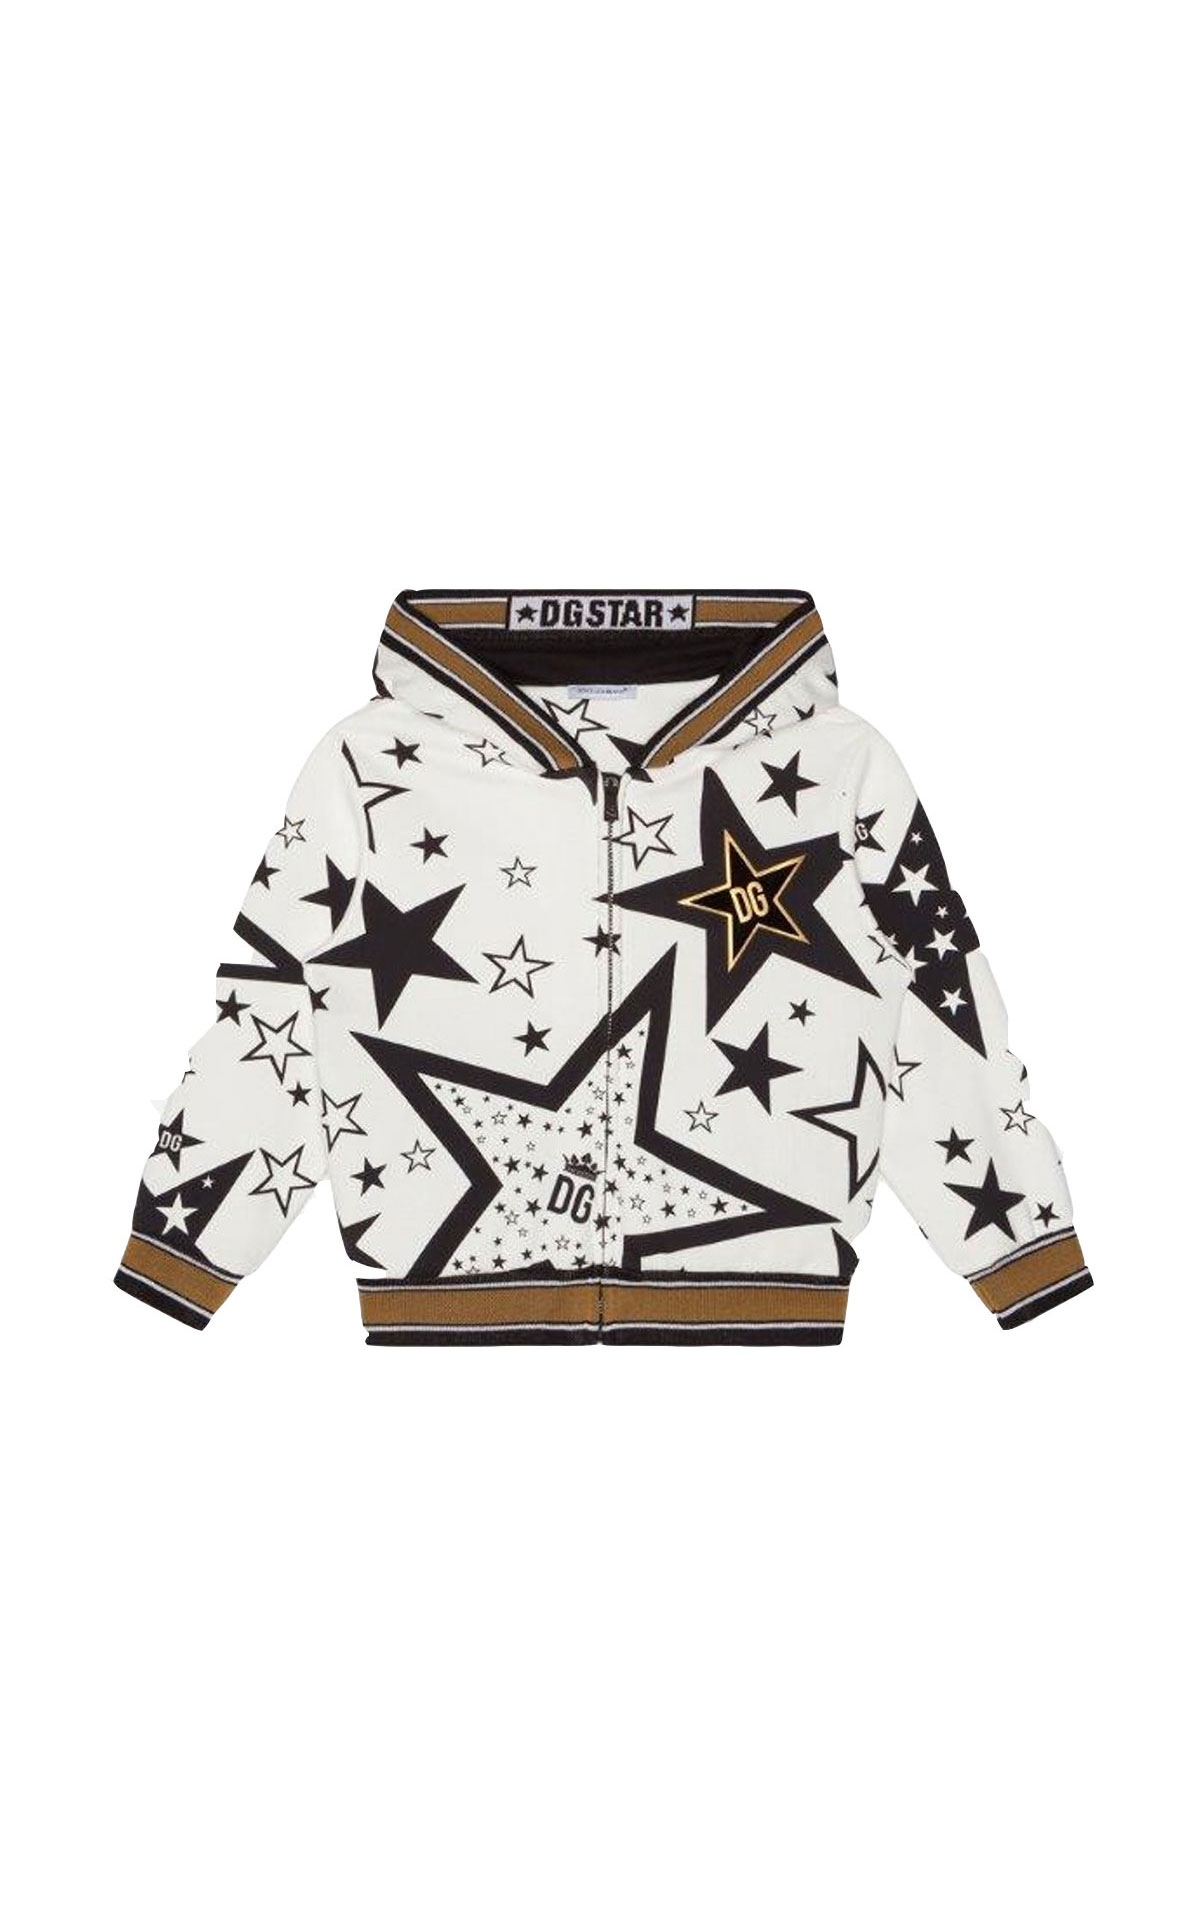 Dolce & Gabbaba Star print hooded sweatshirt from Bicester Village